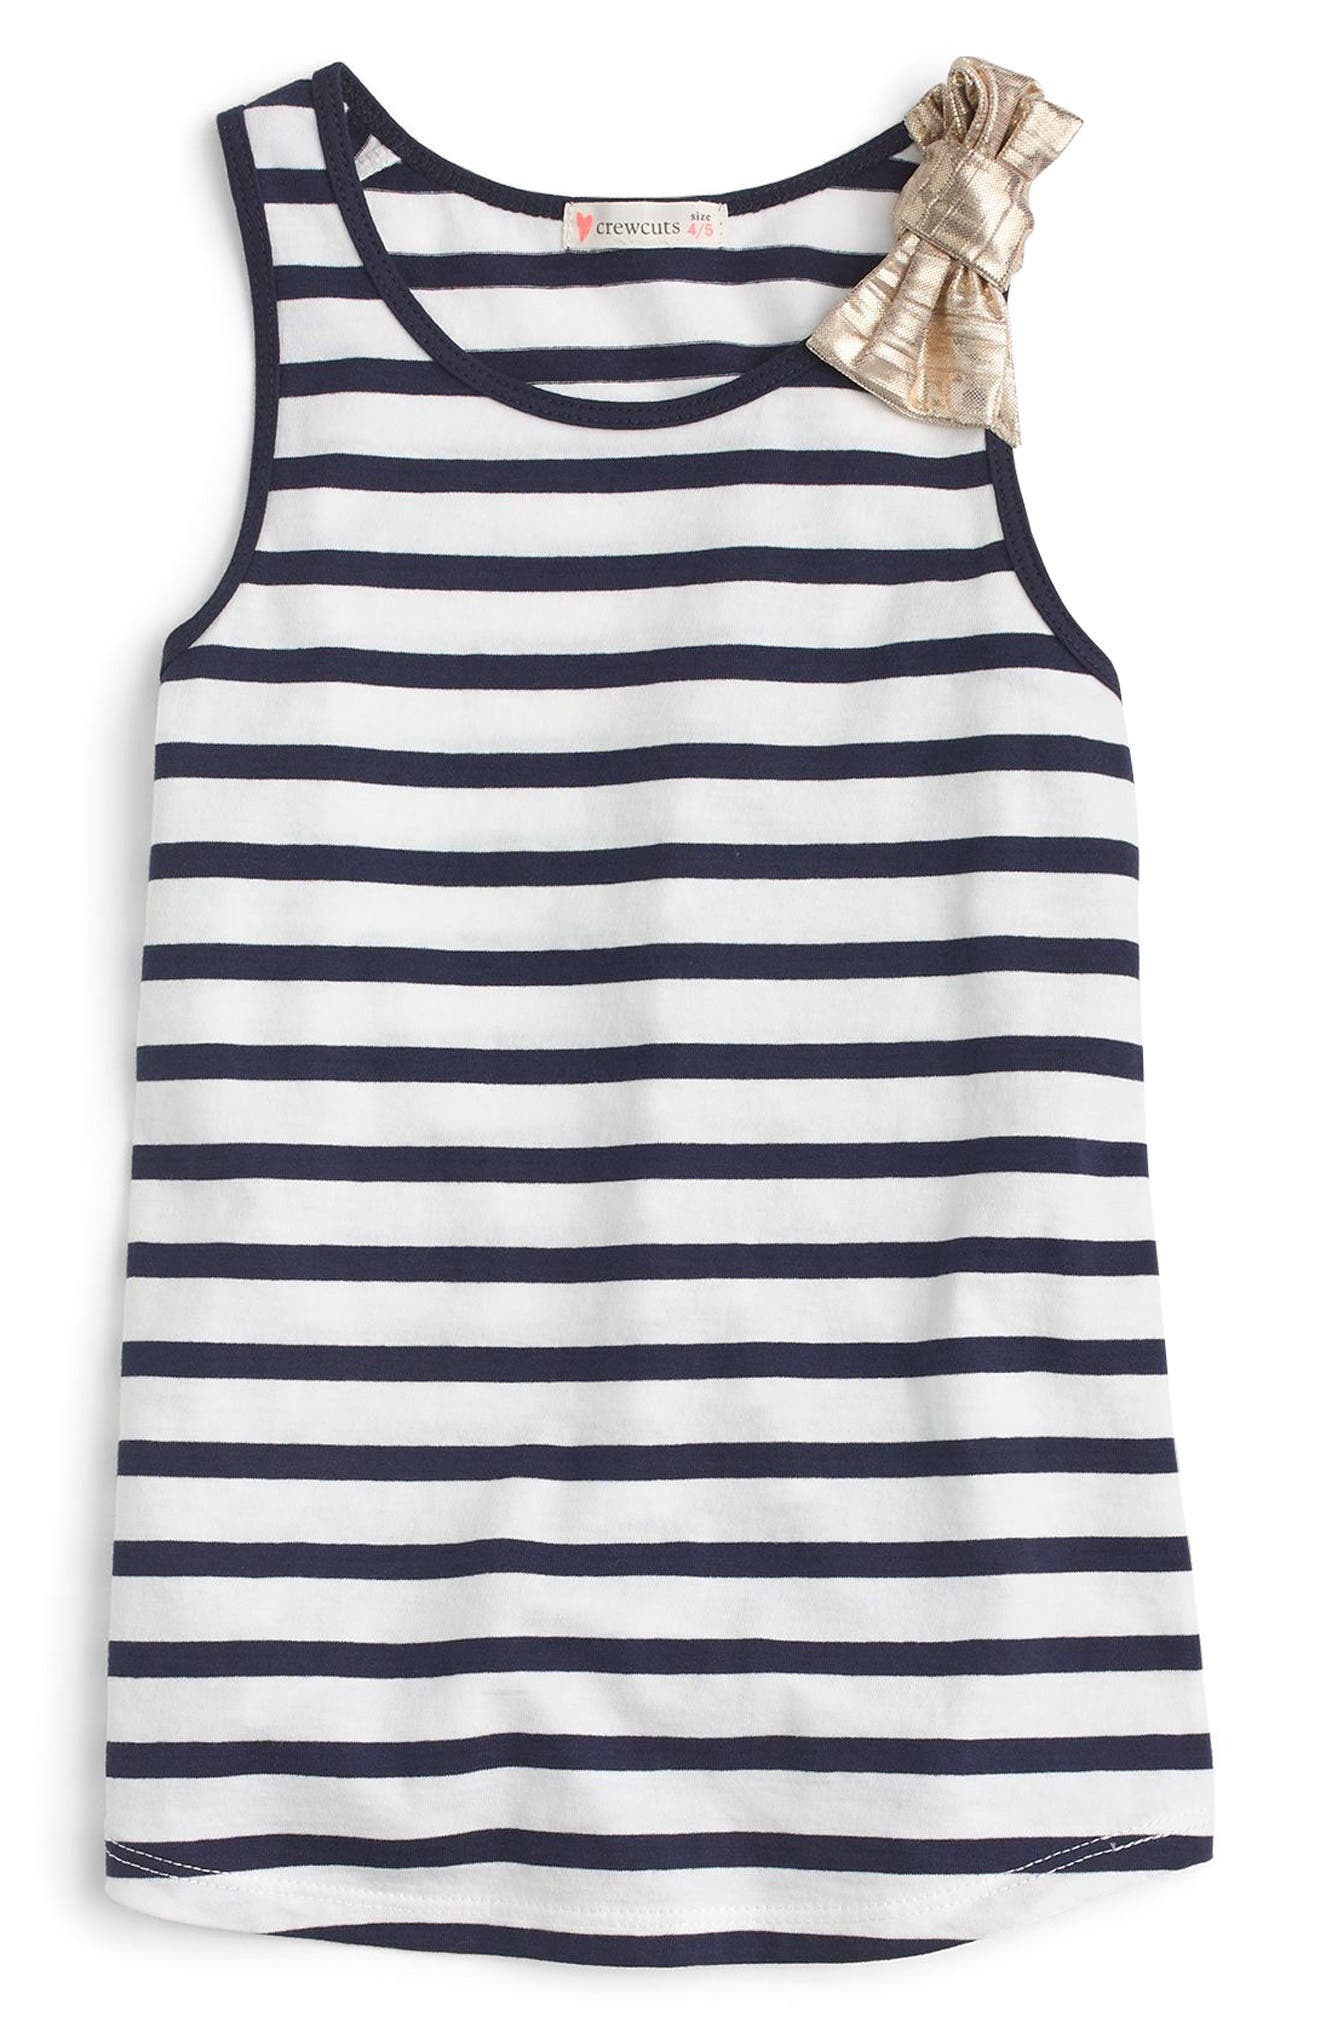 CREWCUTS BY J.CREW, Stripe Bow Tank Top, Main thumbnail 1, color, 410